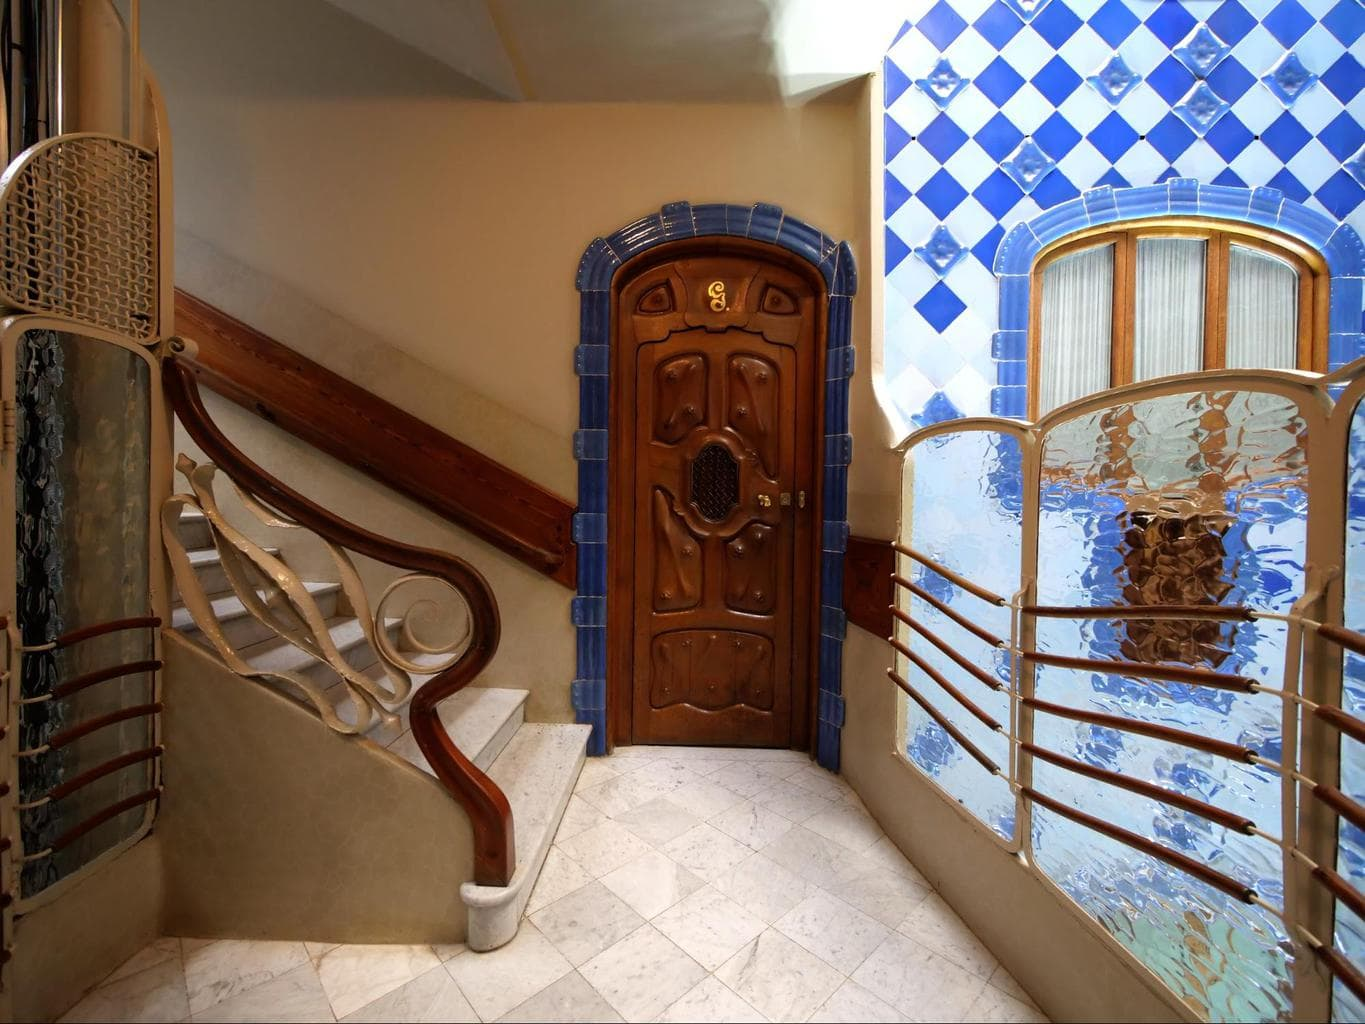 The stairs inside Casa Batlló